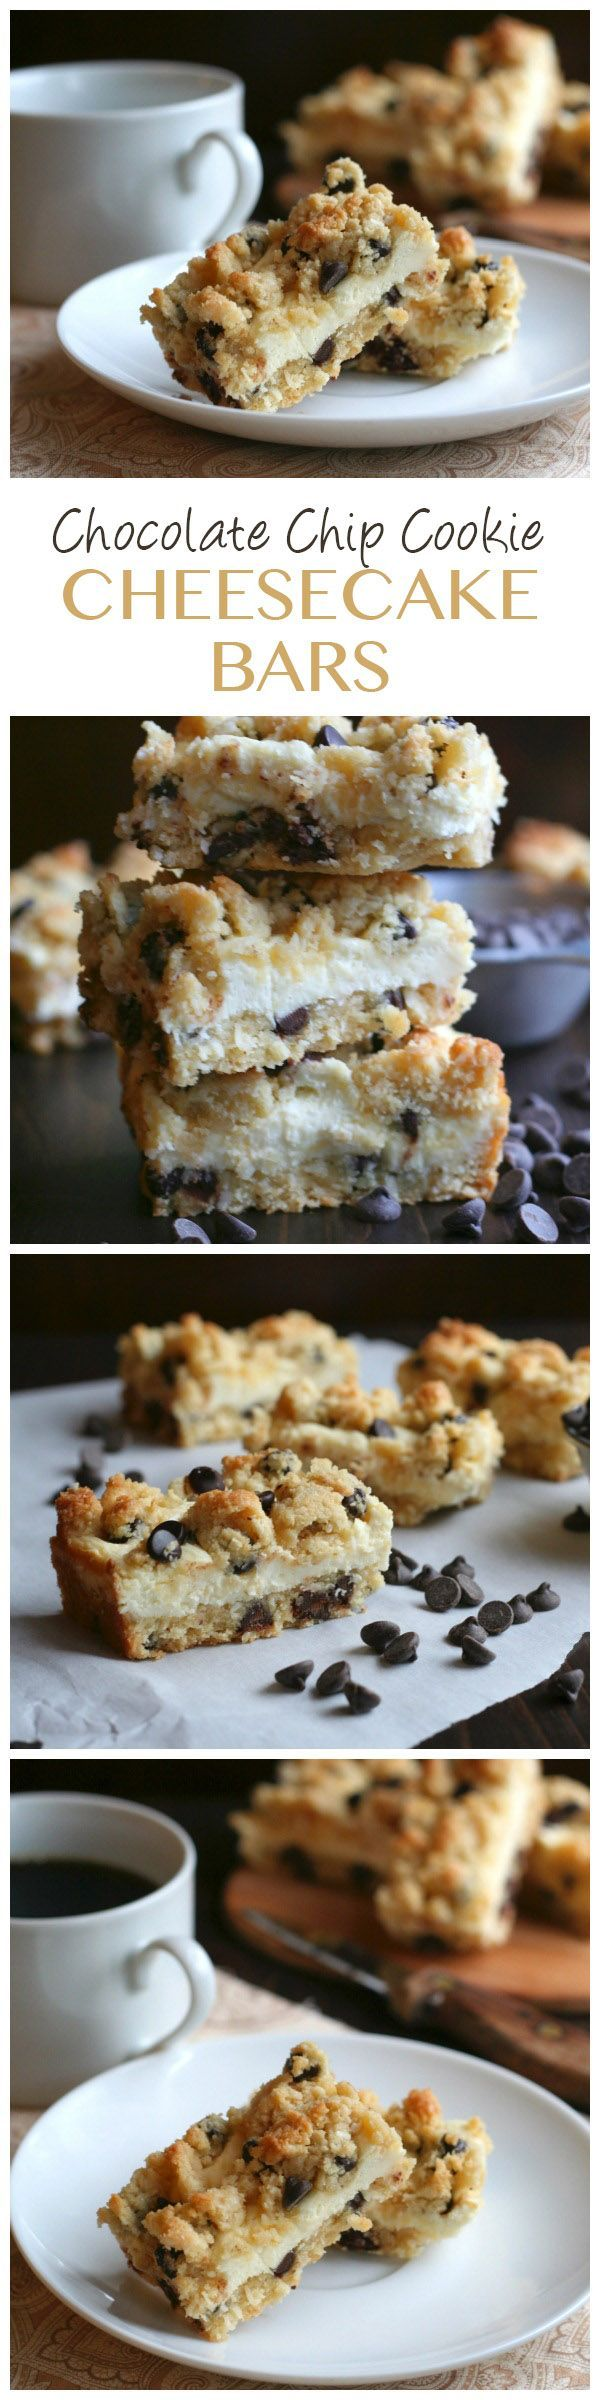 Delicious creamy low carb cheesecake sandwiched between grain-free chocolate chip cookie dough. Health is delicious!